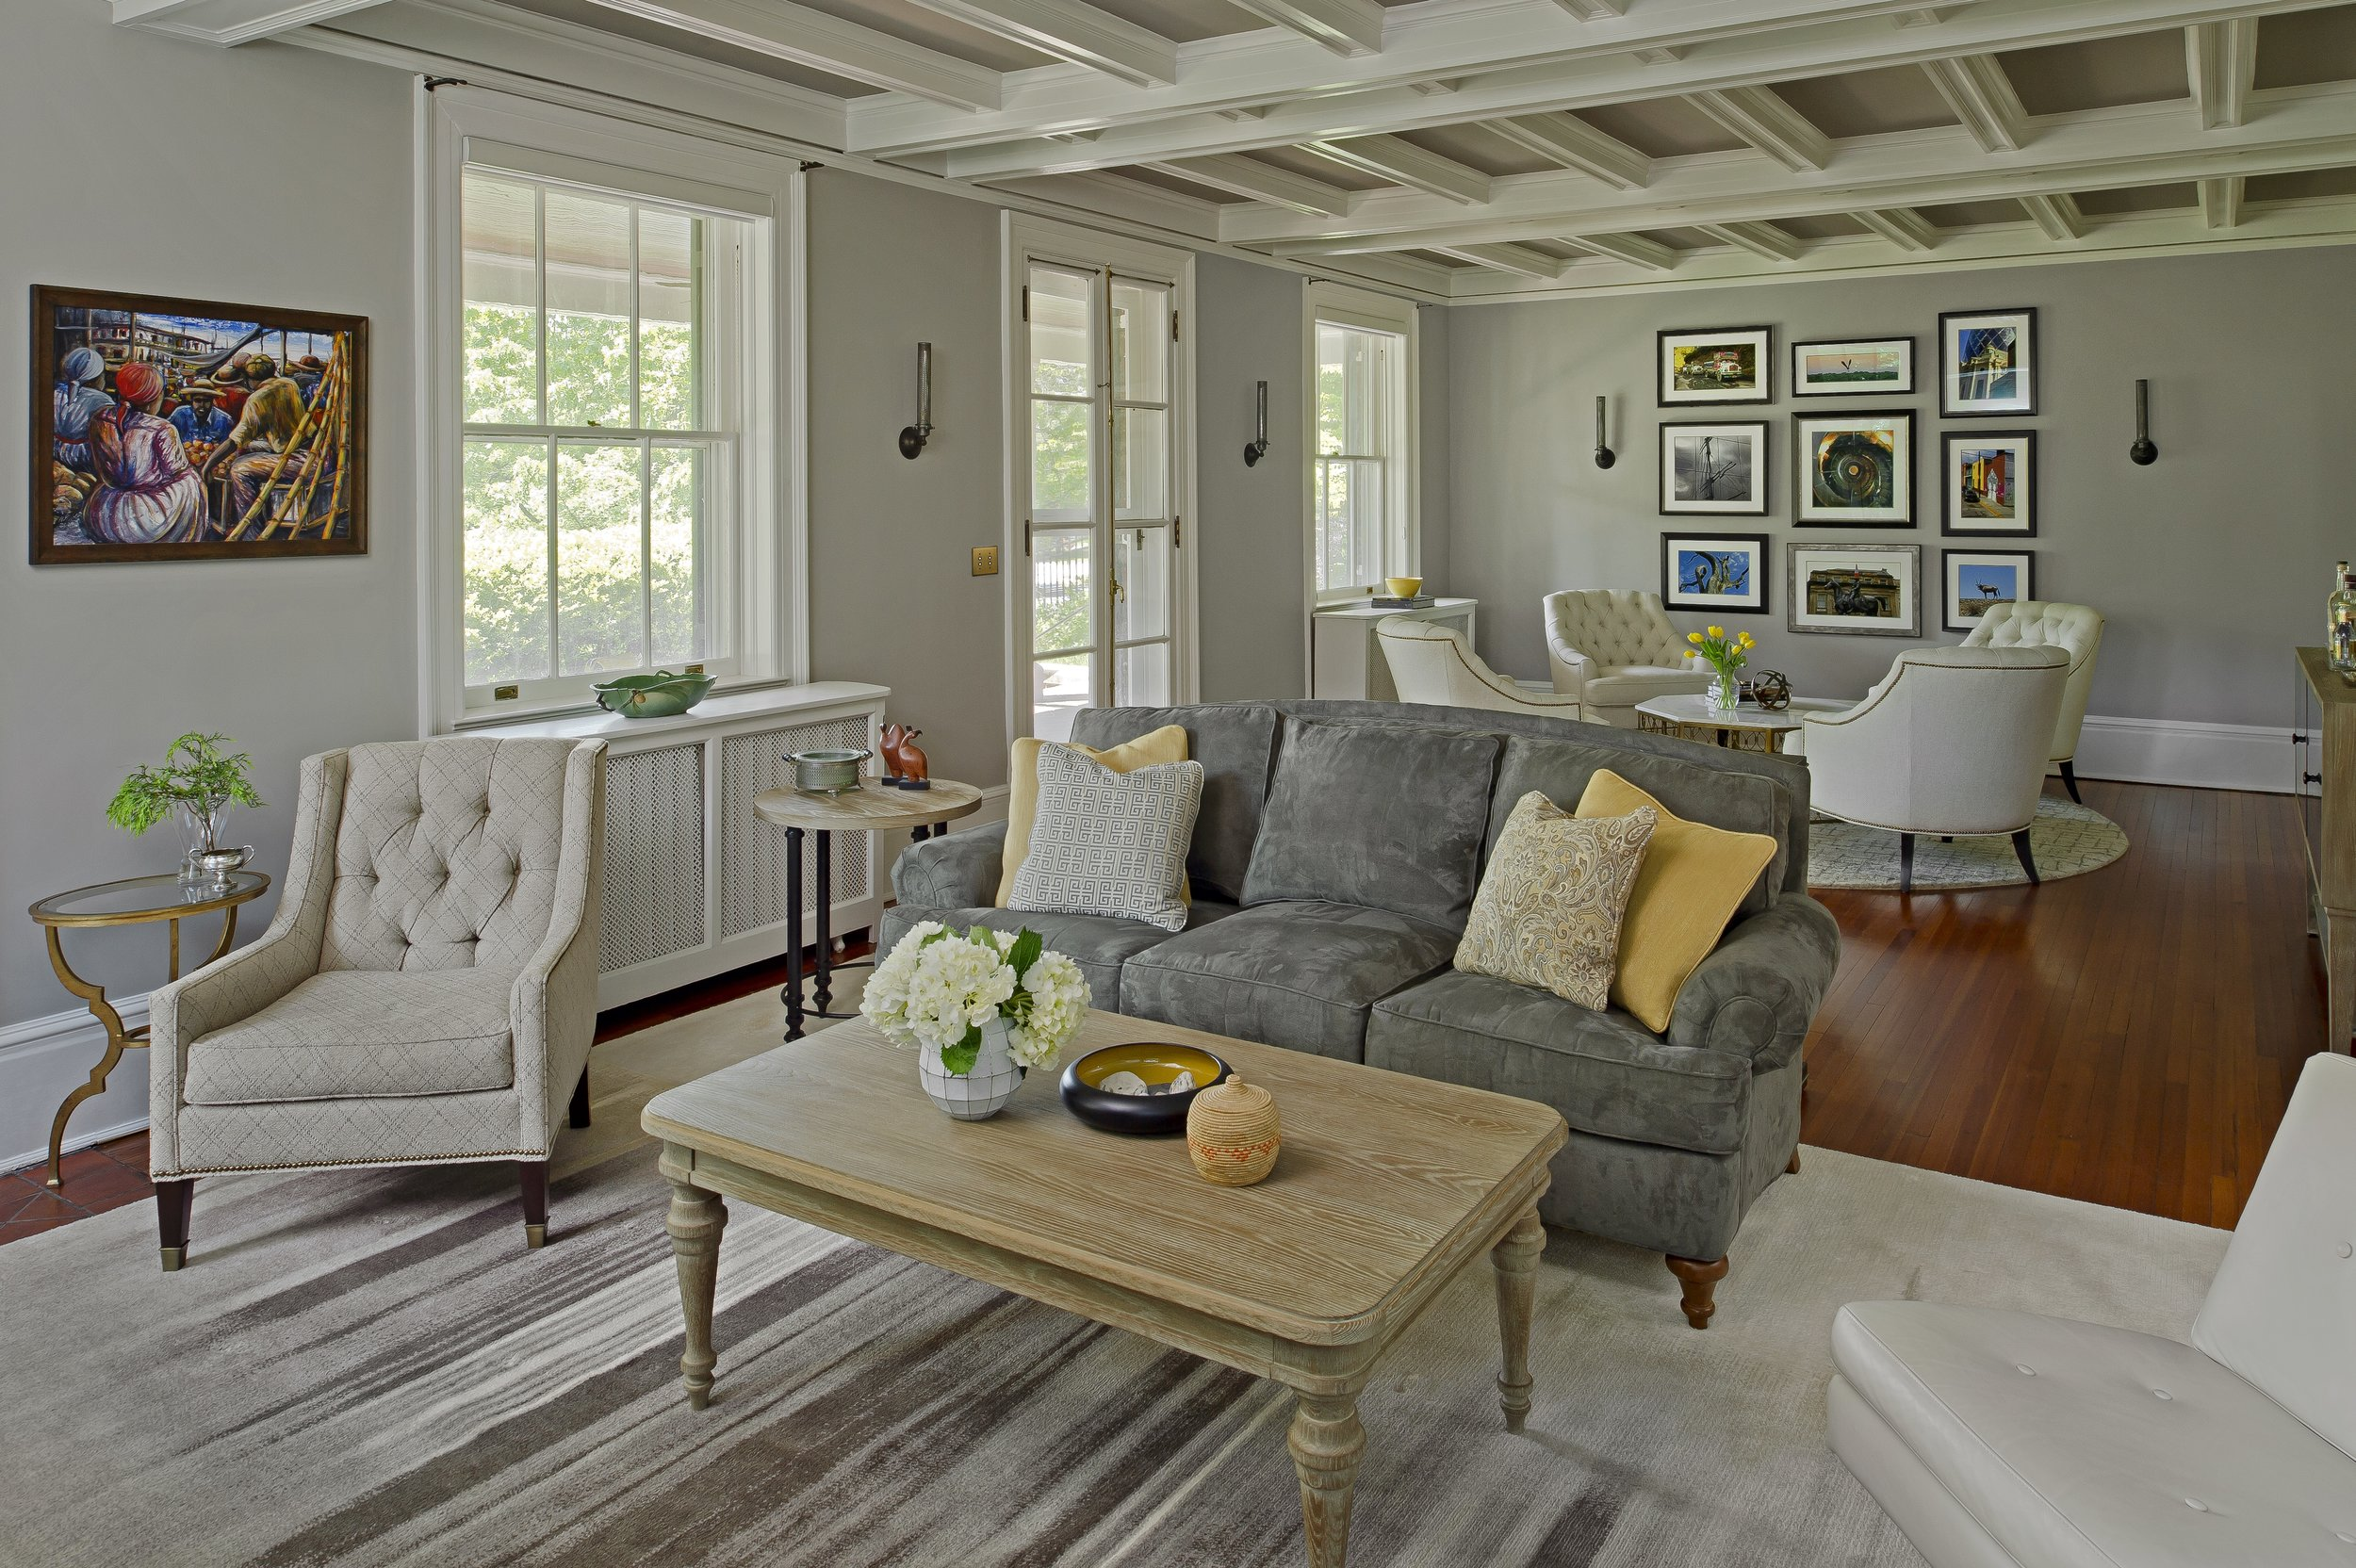 Large living room with neutral color palette and ceiling molding